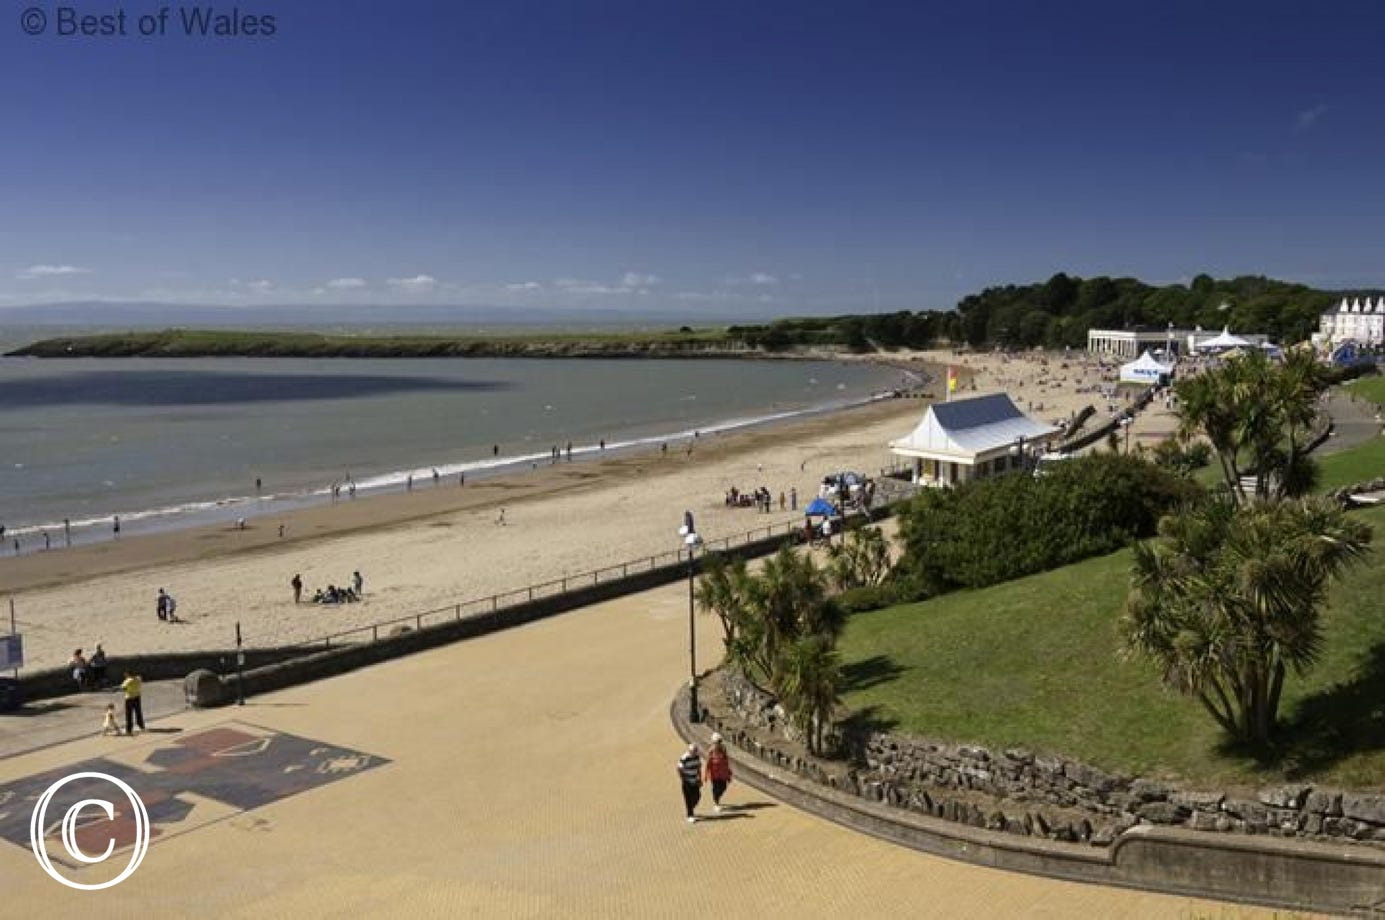 Barry Island beach - only 2 miles away